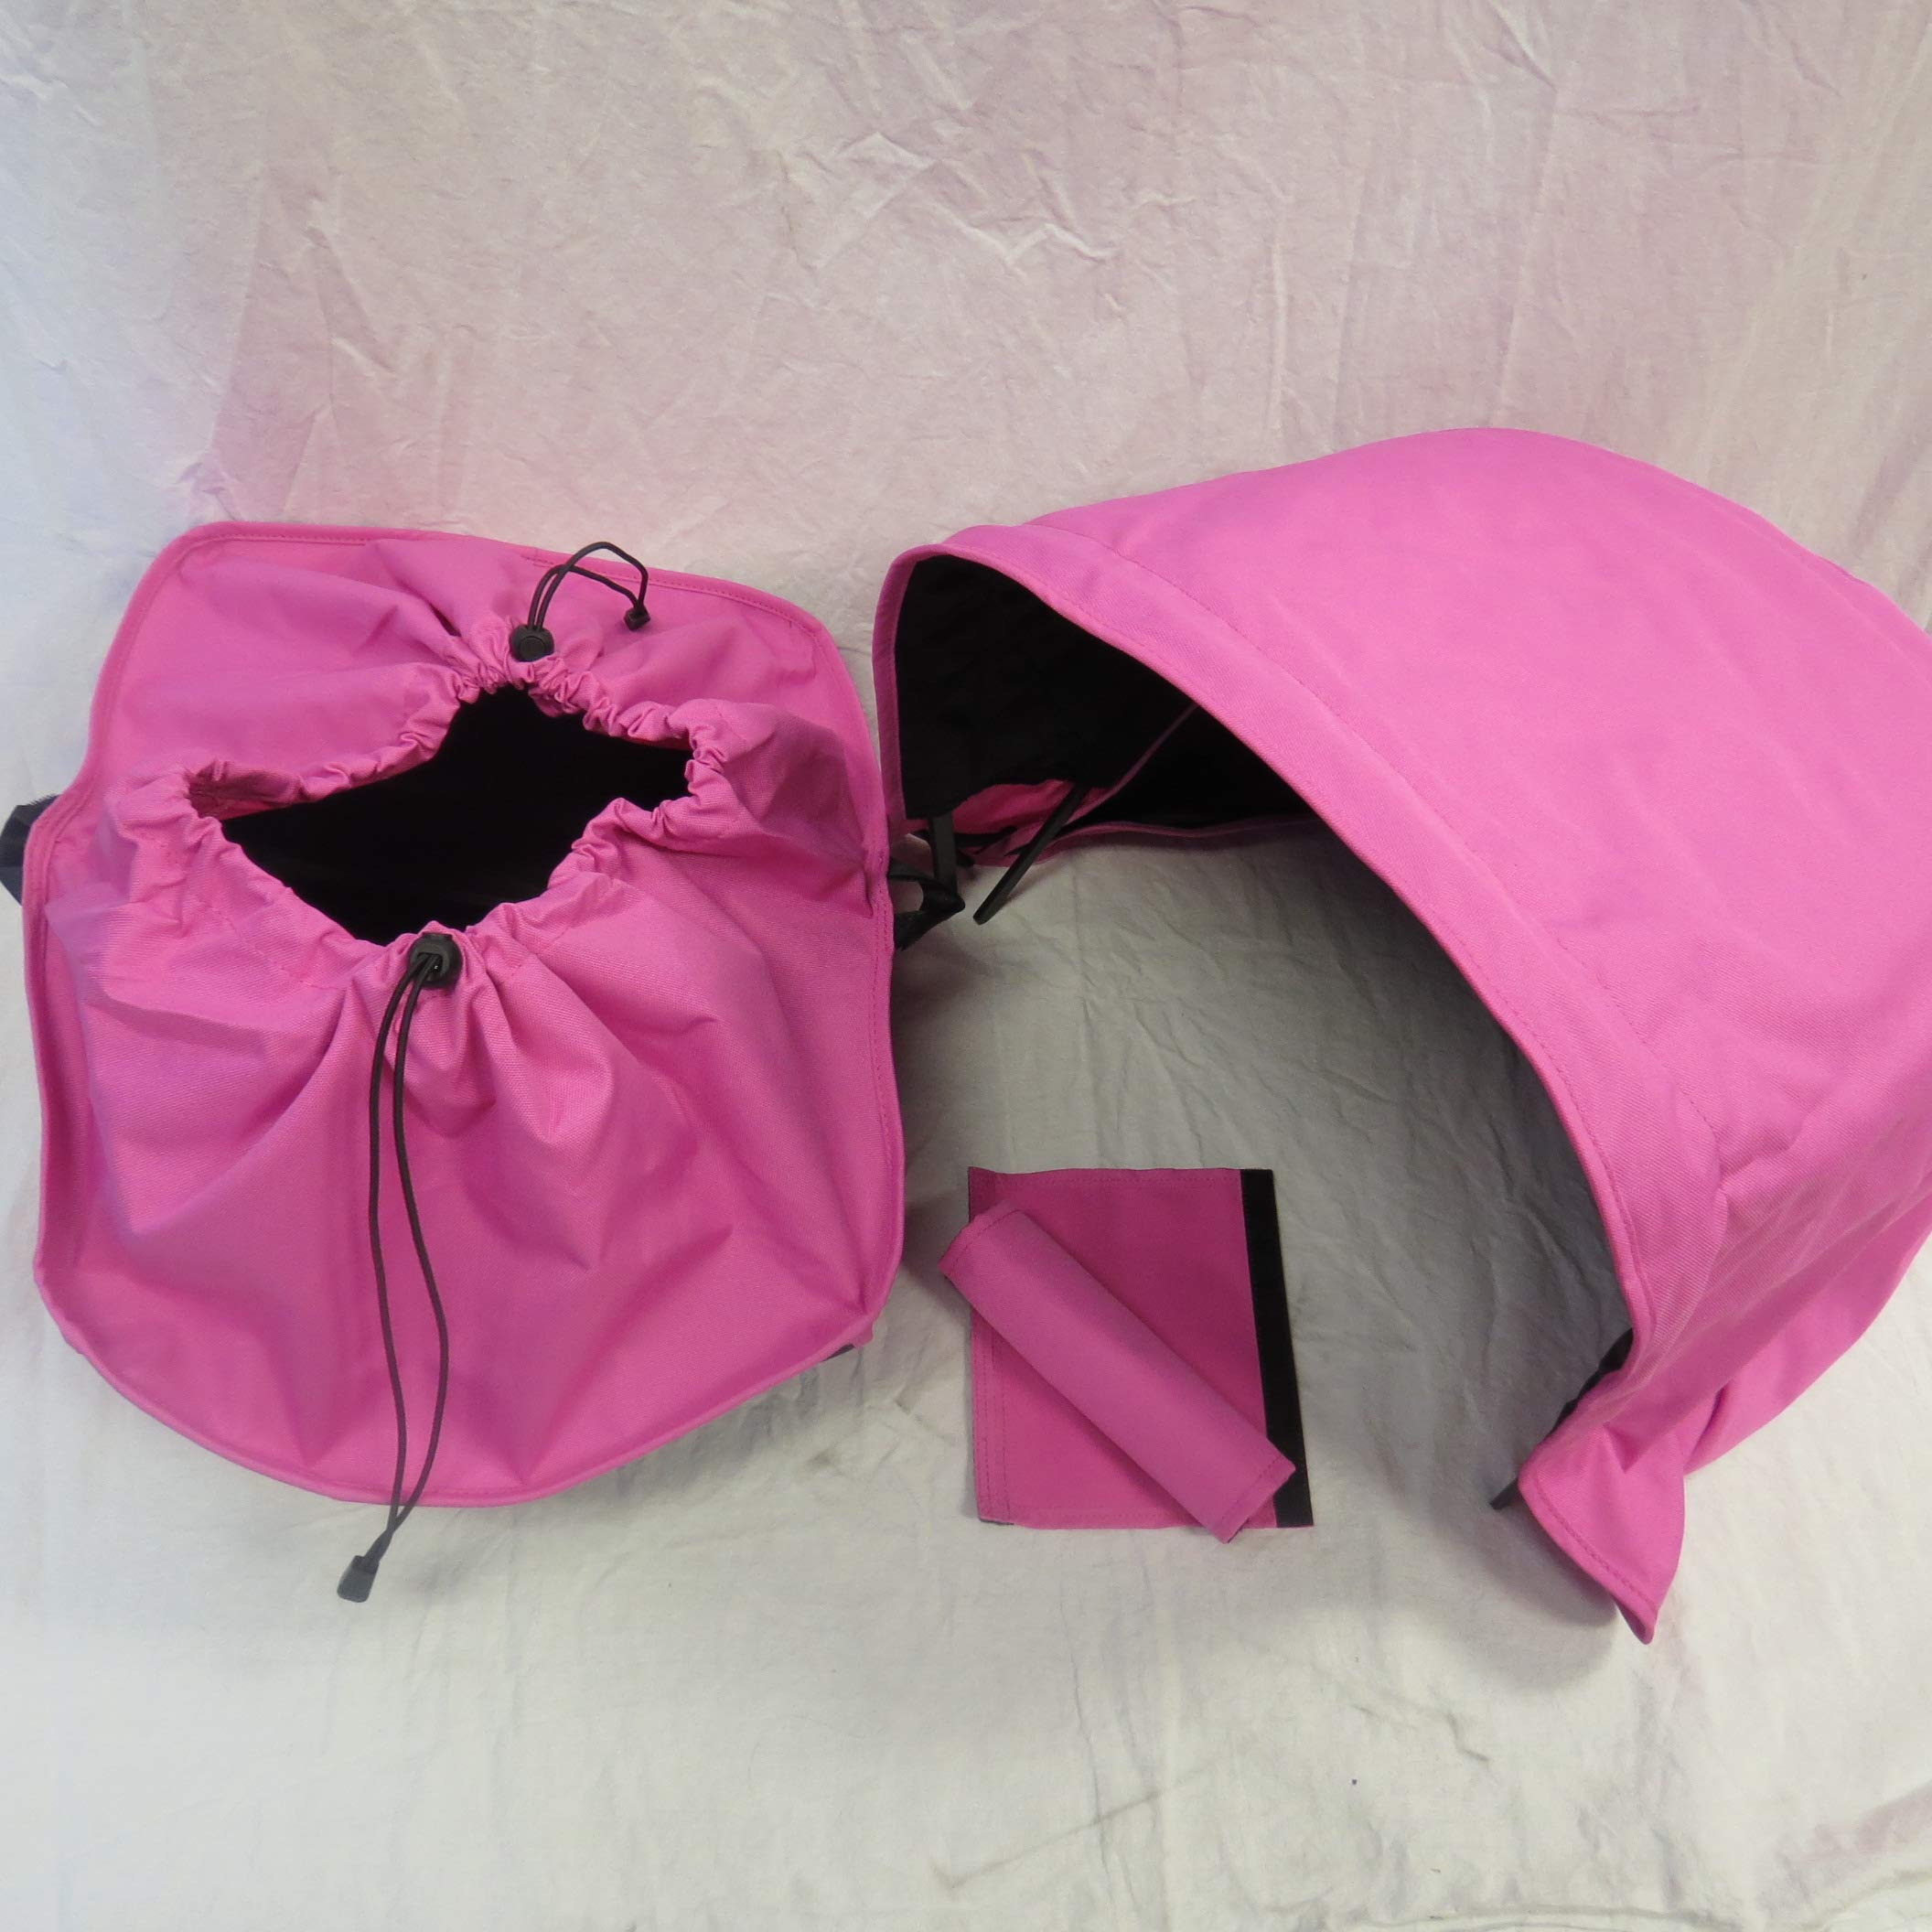 Pink Sun Shade Canopy and Large Under Seat Storage Basket Plus Free Handle Bar Covers for Bugaboo Cameleon 1, 2, 3, Frog Baby Strollers by Ponini (Image #2)